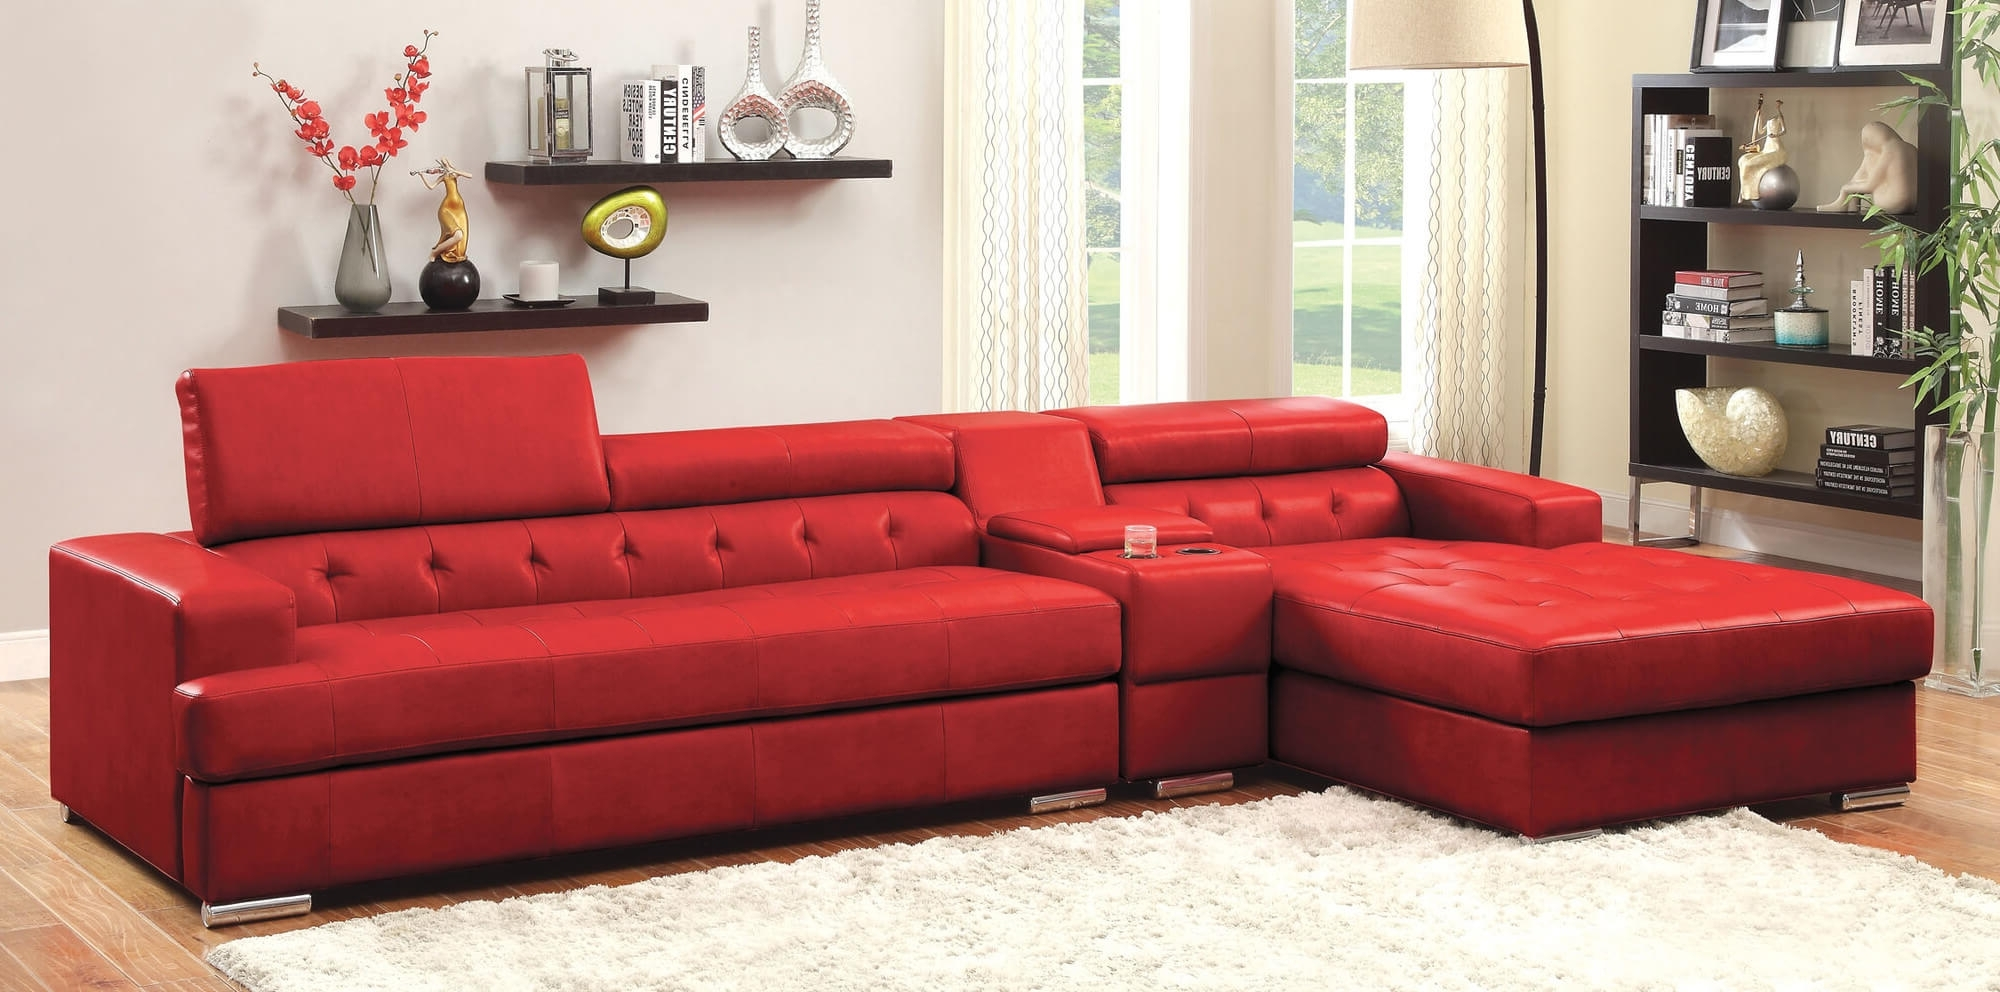 Most Recently Released Sectional Modern Sofa Interior White Button Leather Furniture Within Vancouver Bc Canada Sectional Sofas (View 7 of 20)